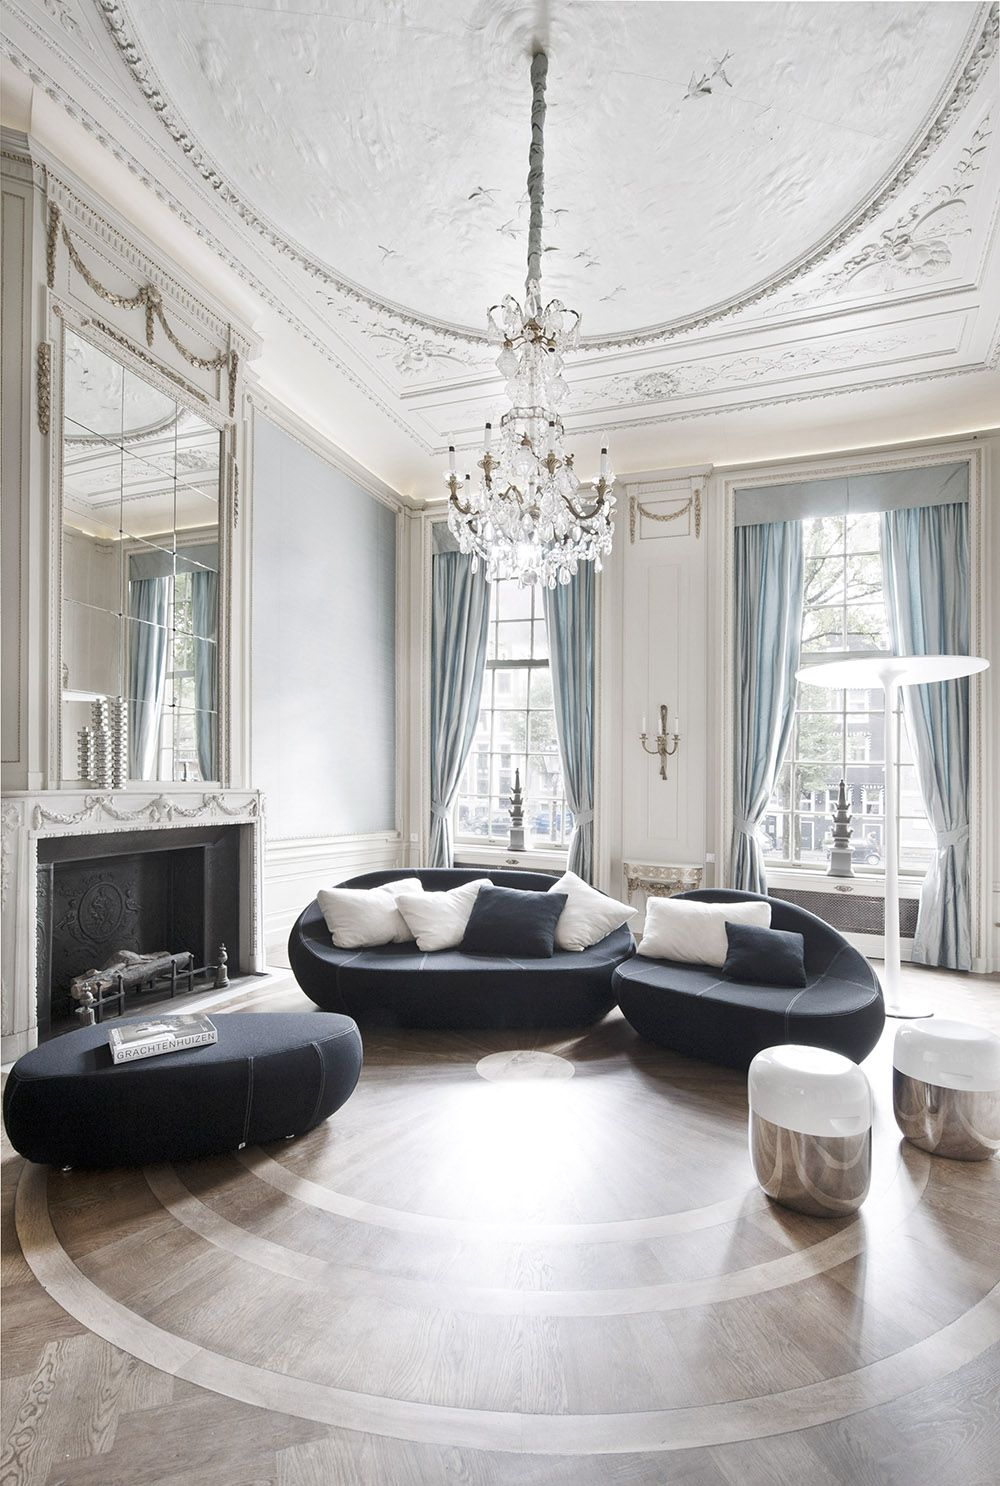 The Flirtstones Sofa And Thx Lamp In Luxurious Reception Rooms For Replay Office Showrooms Herengracht Amsterdam